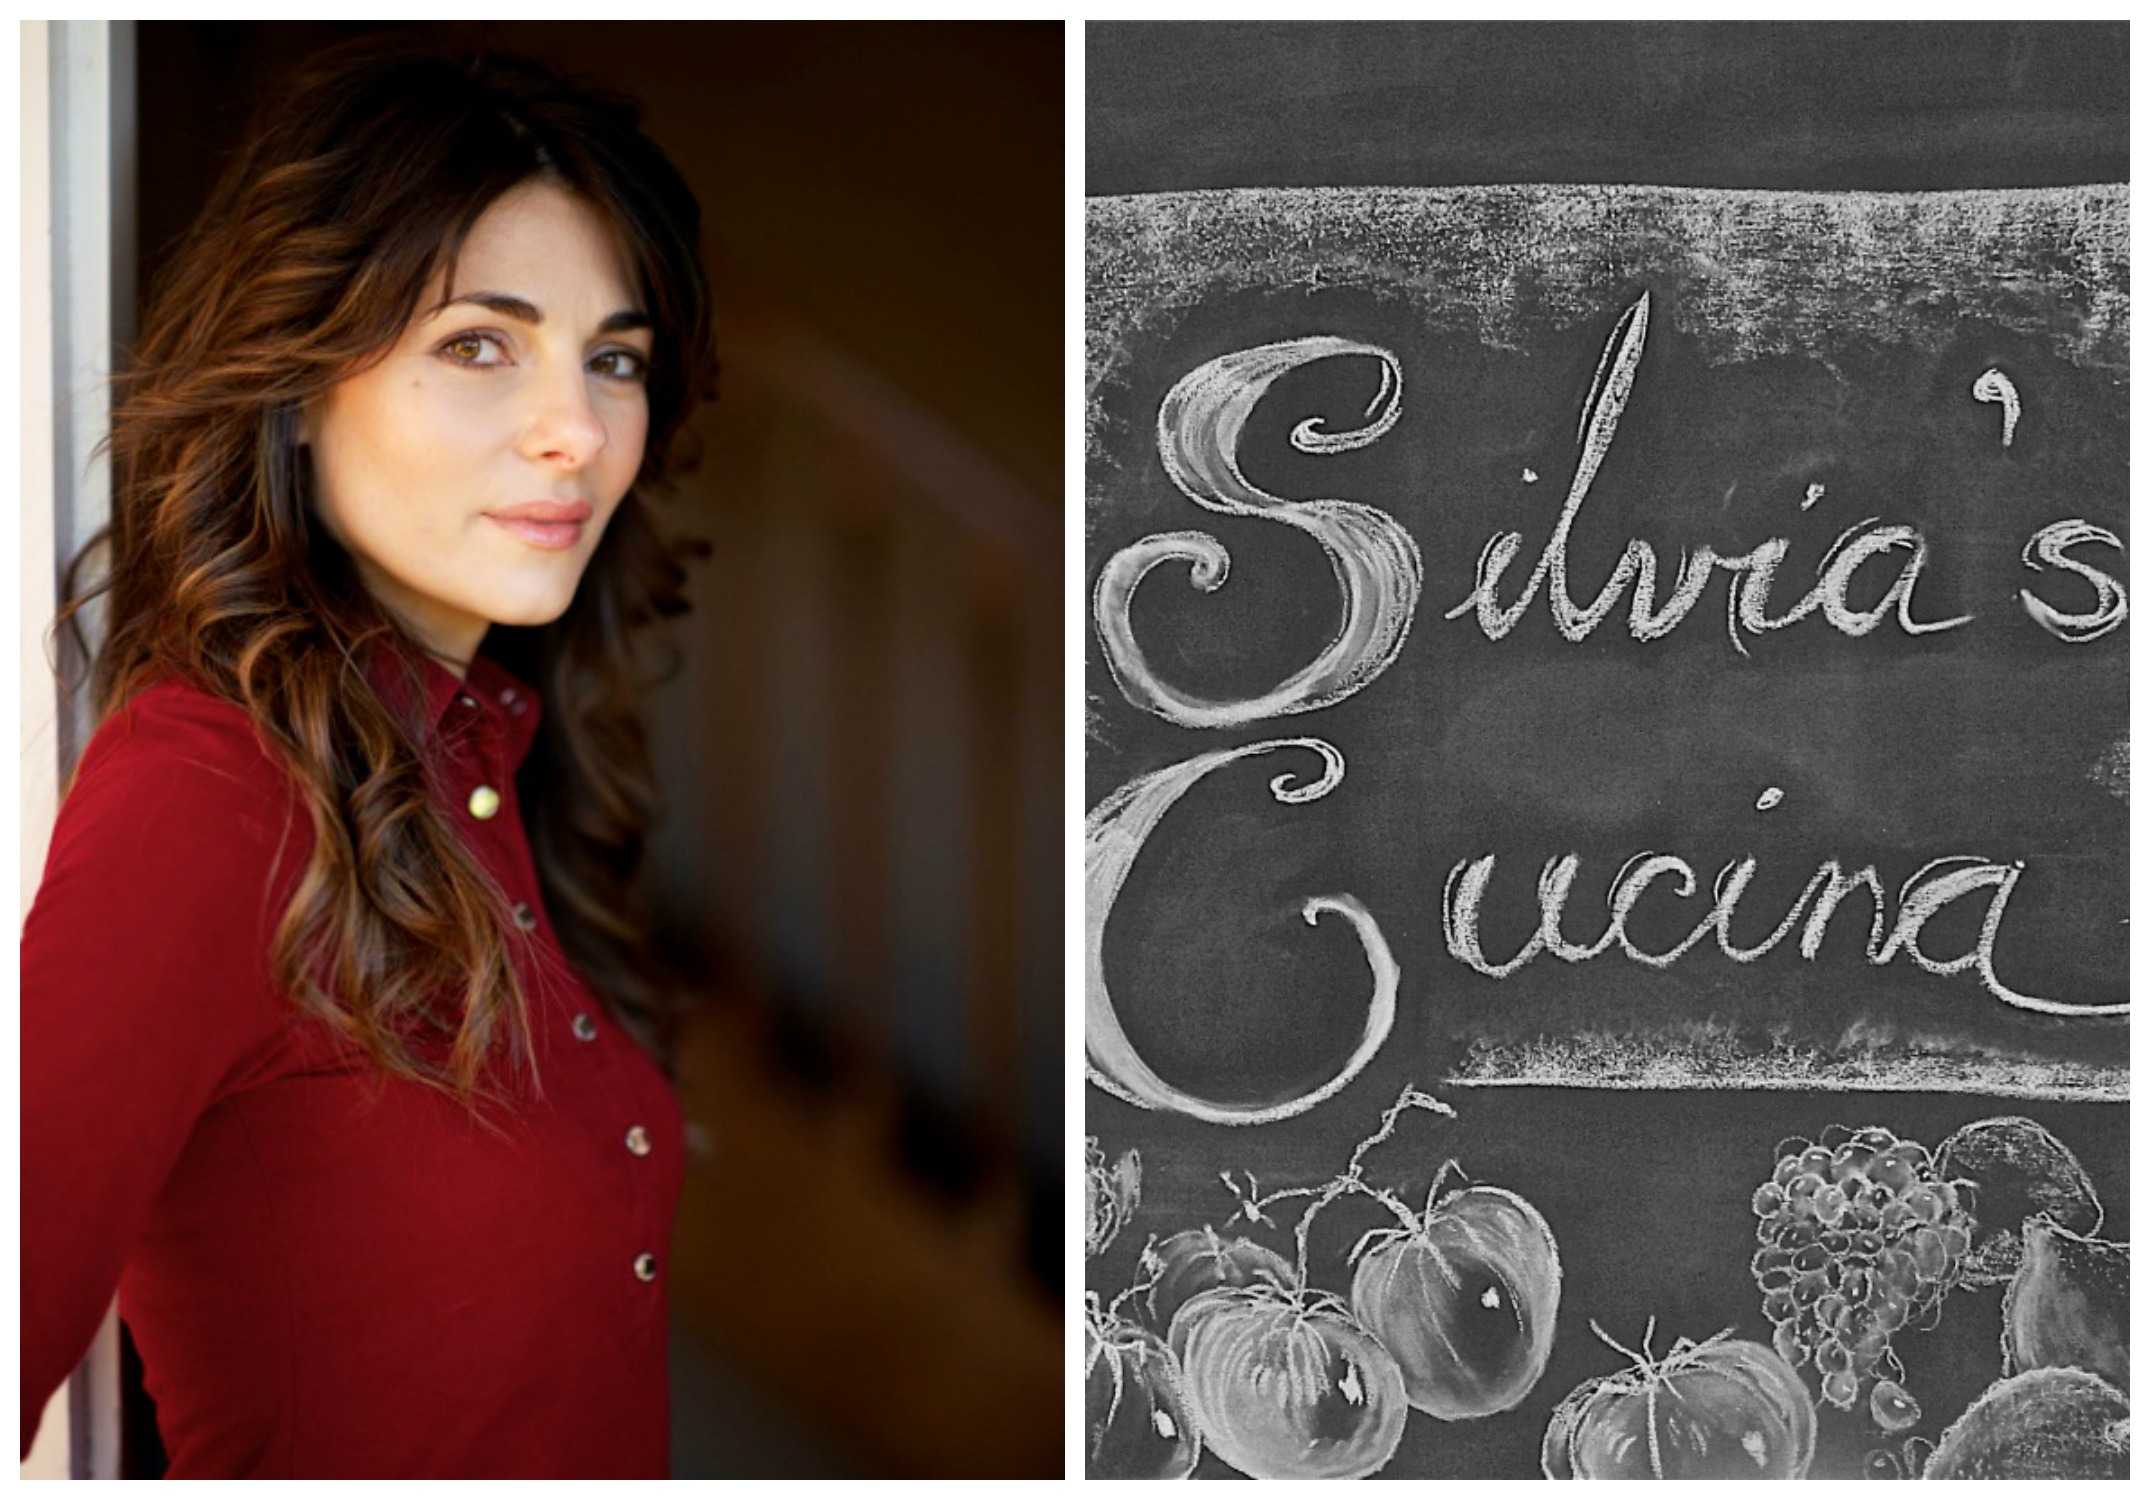 Silvia Colloca - Italian food blogger, actress. SilviasCucina.net